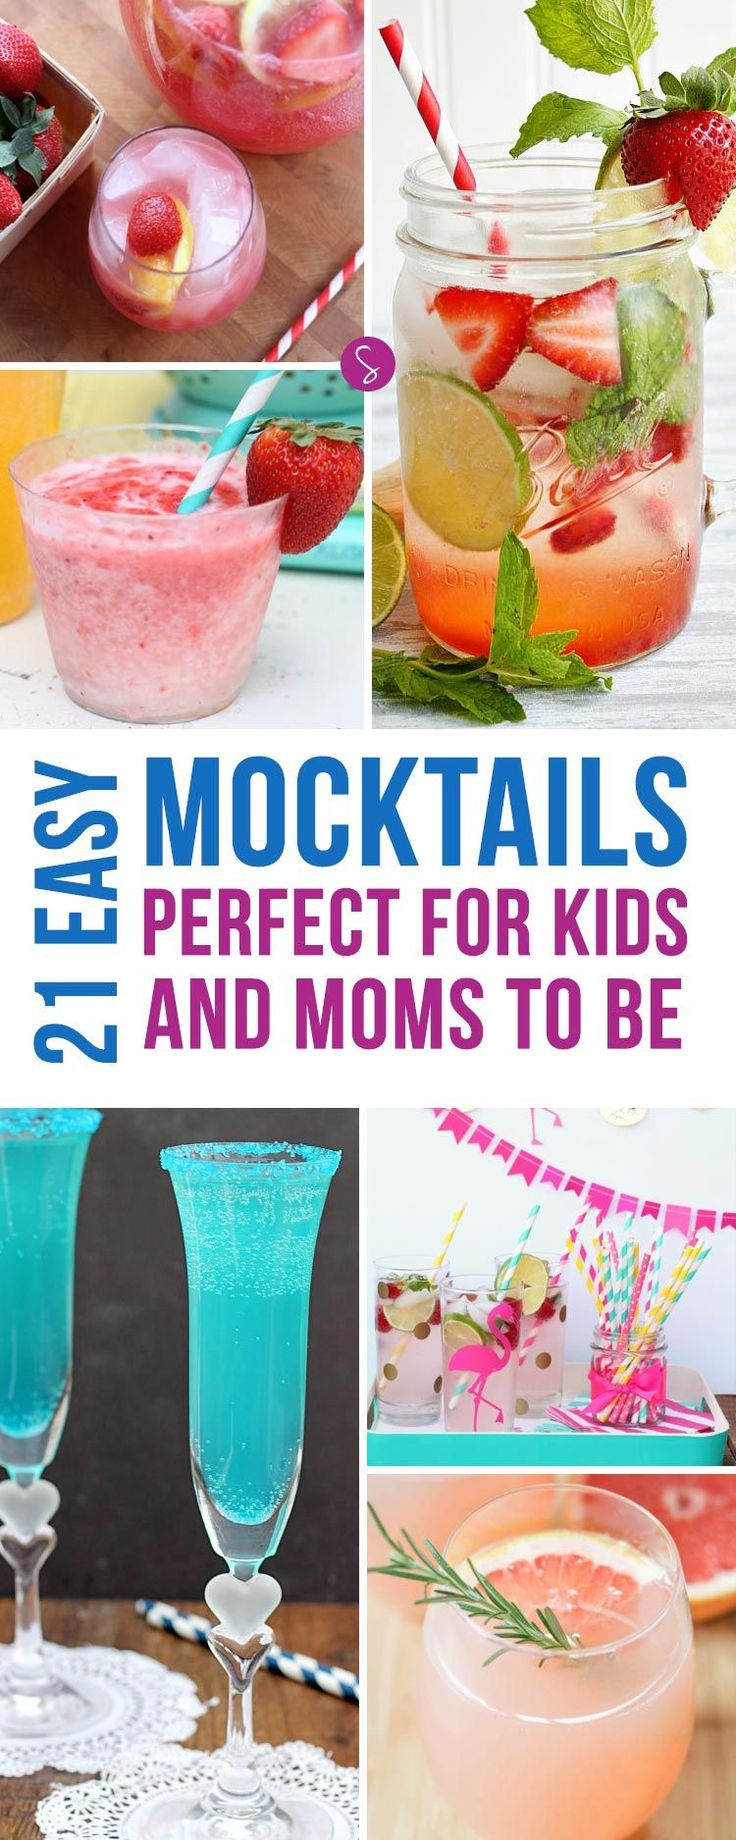 Easy Mocktail Recipes for Kids and Baby Showers! Just because they can't drink alcohol doesn't mean their party drinks have to be boring right?